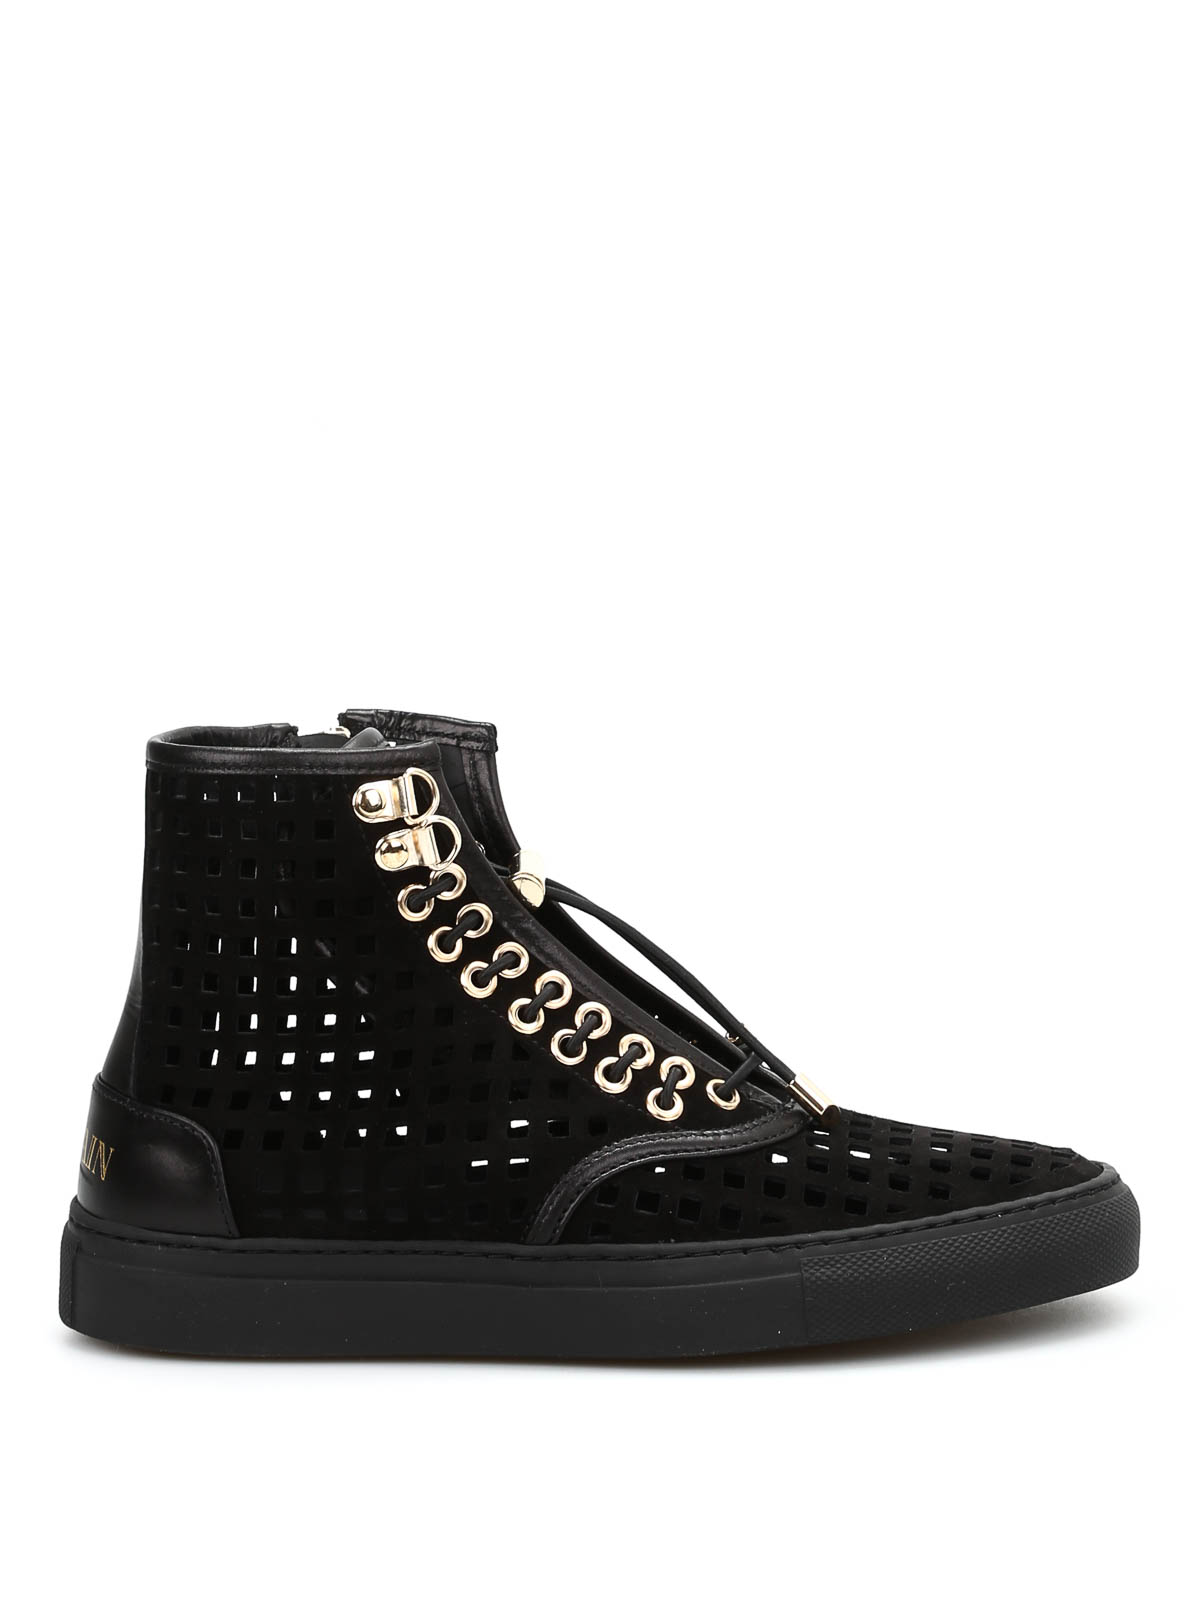 a66d3f5858 Balmain - High-top openwork suede sneakers - trainers - S6CBL010204P176